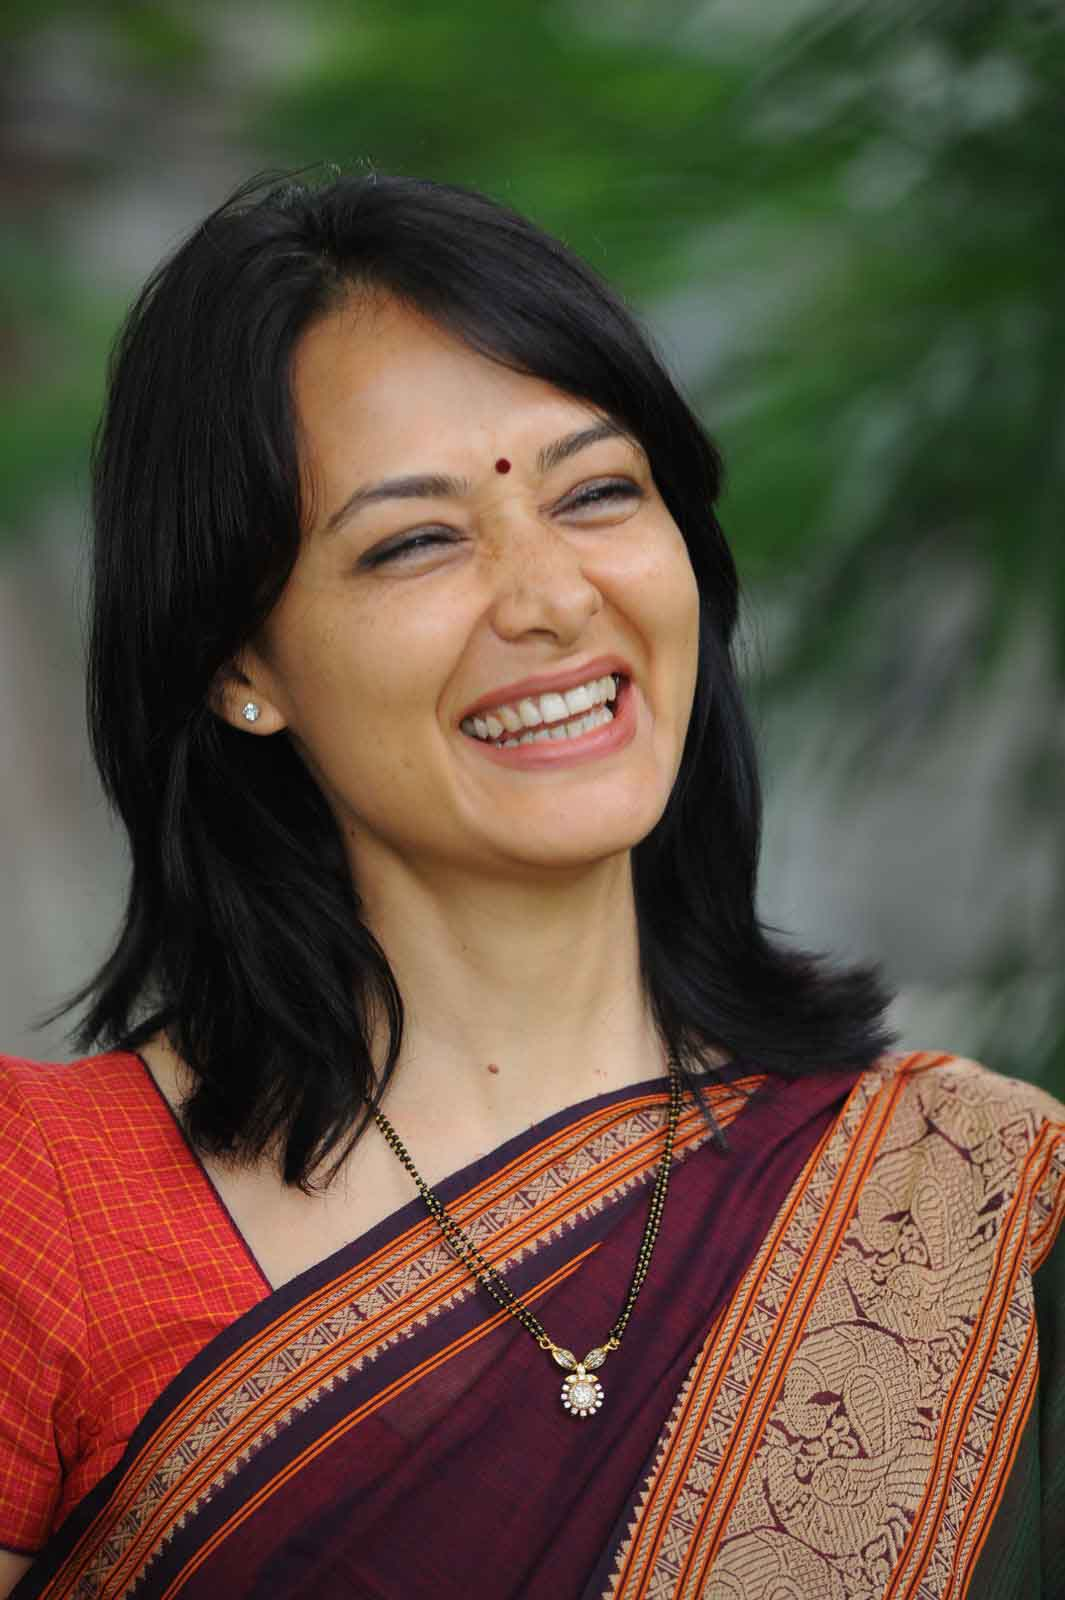 Amala smile pictures